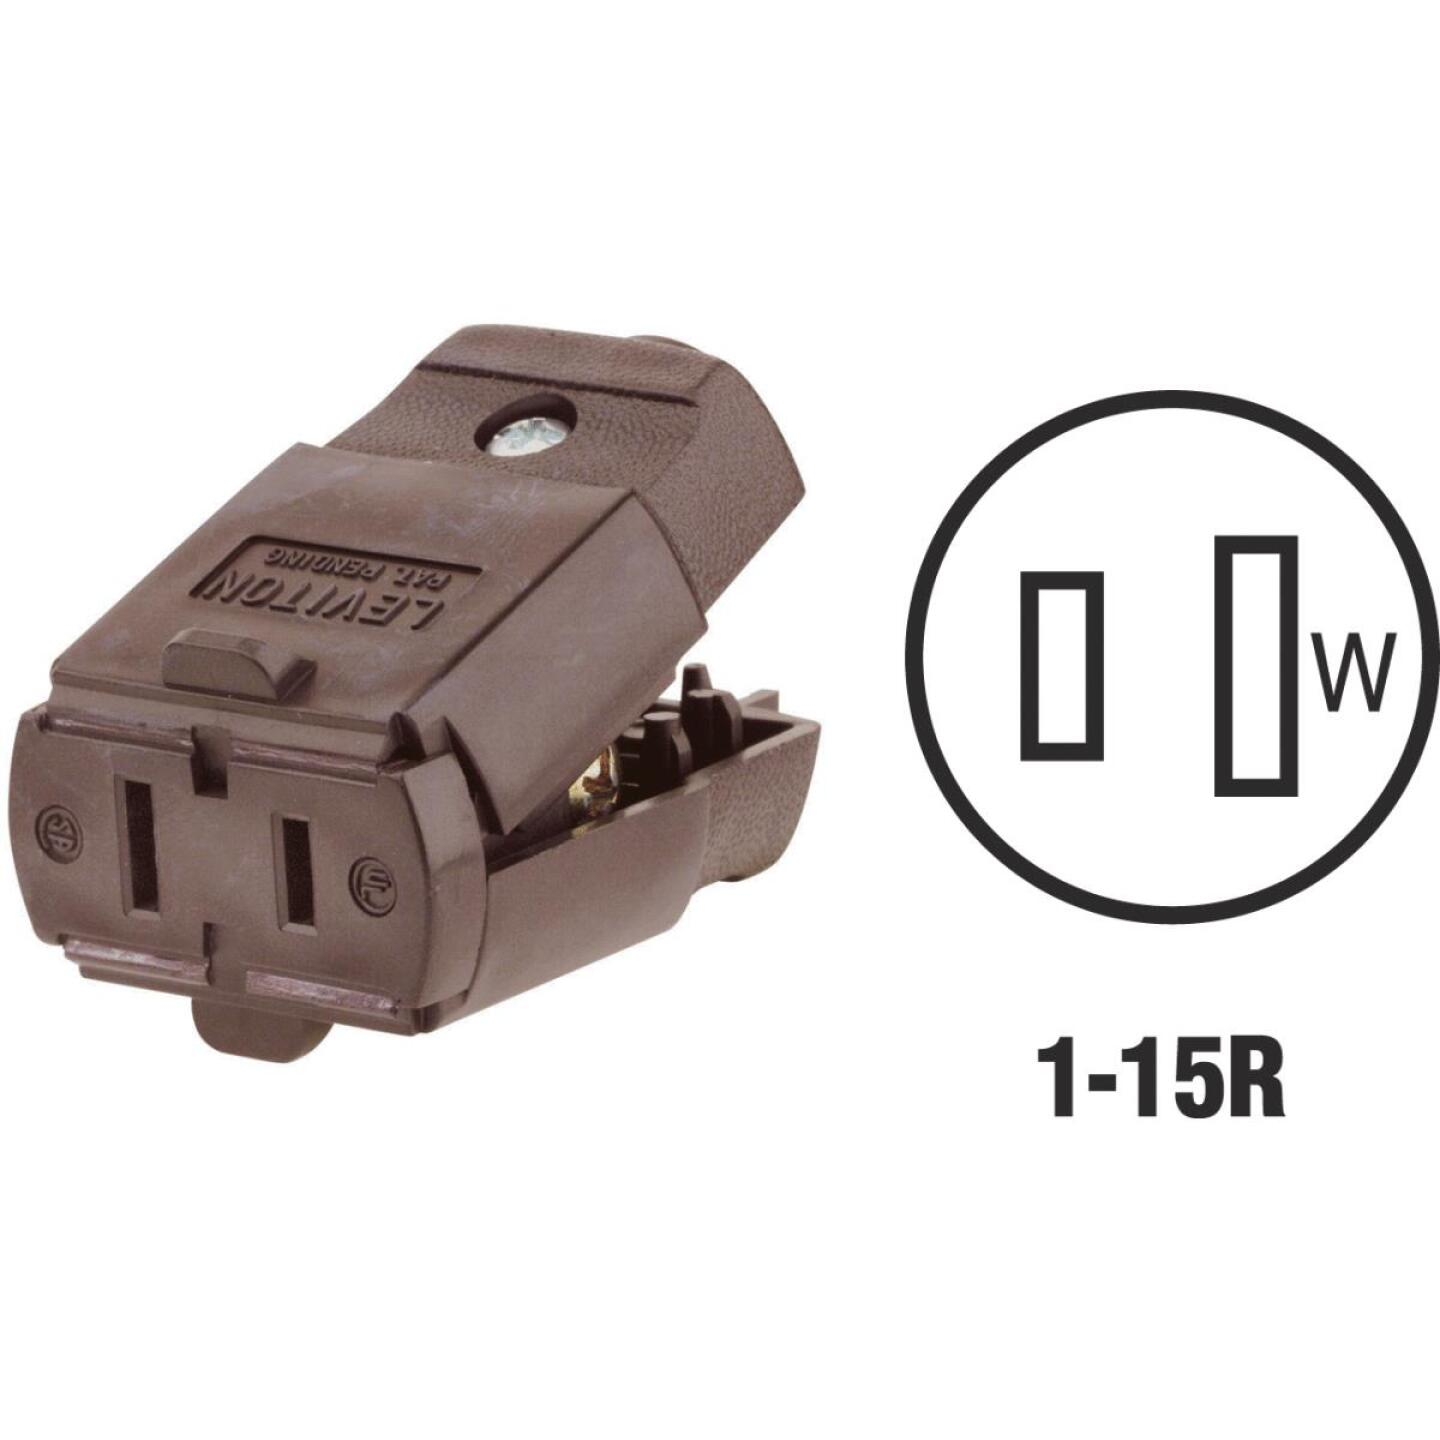 Leviton 15A 125V 2-Wire 2-Pole Hinged Cord Connector, Brown Image 1